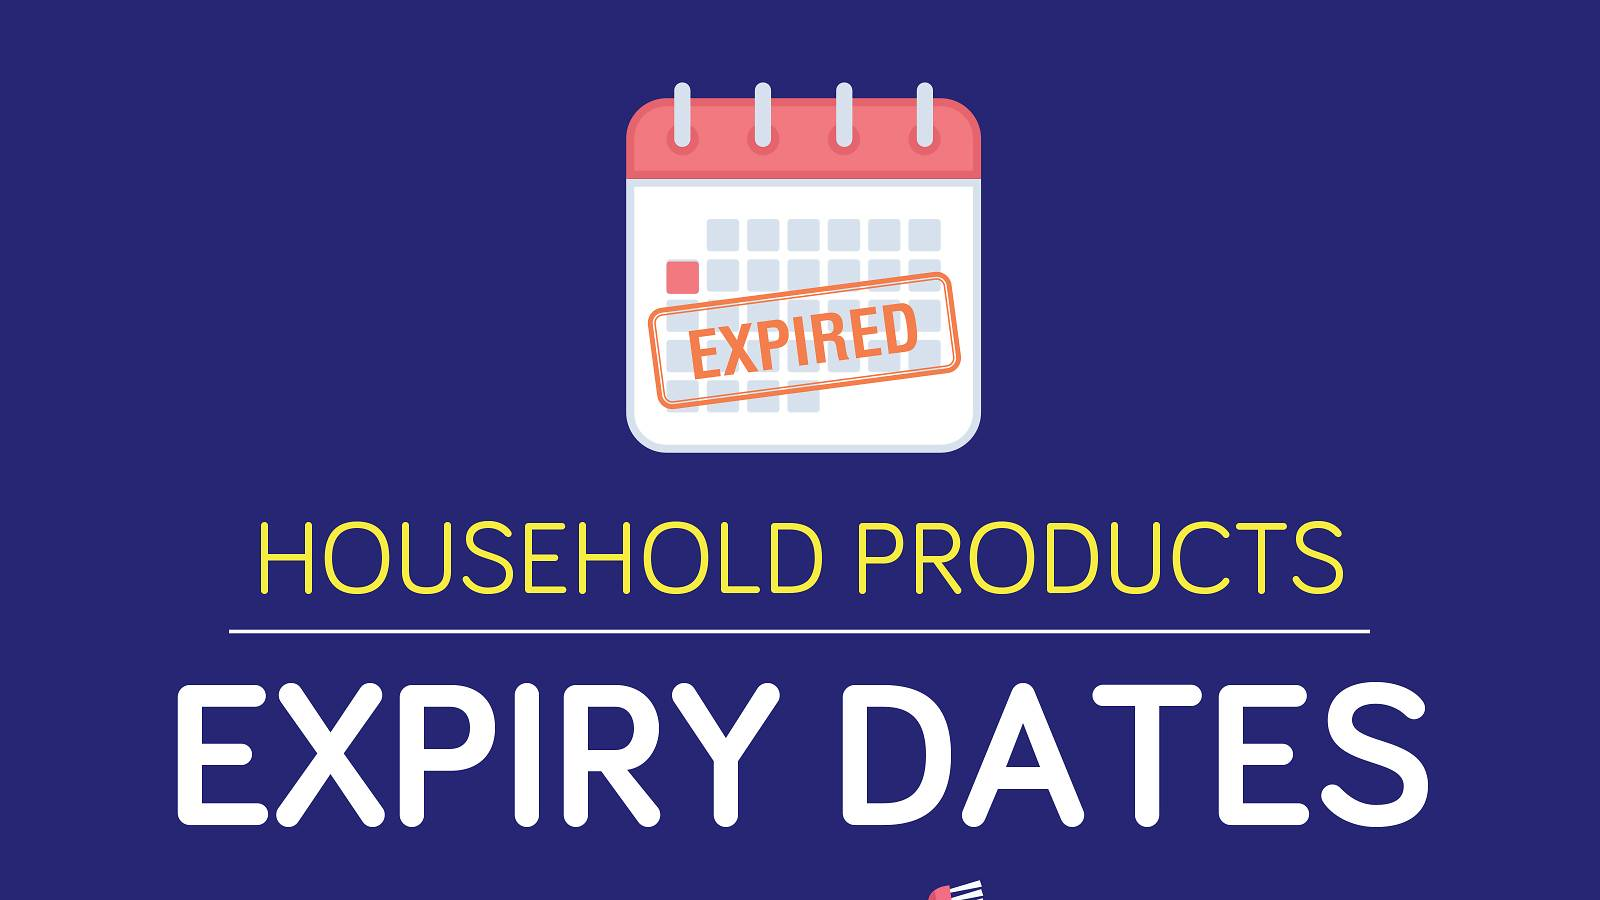 Parents-Common-household-products-you-didn't-know-have-expiry-dates_01